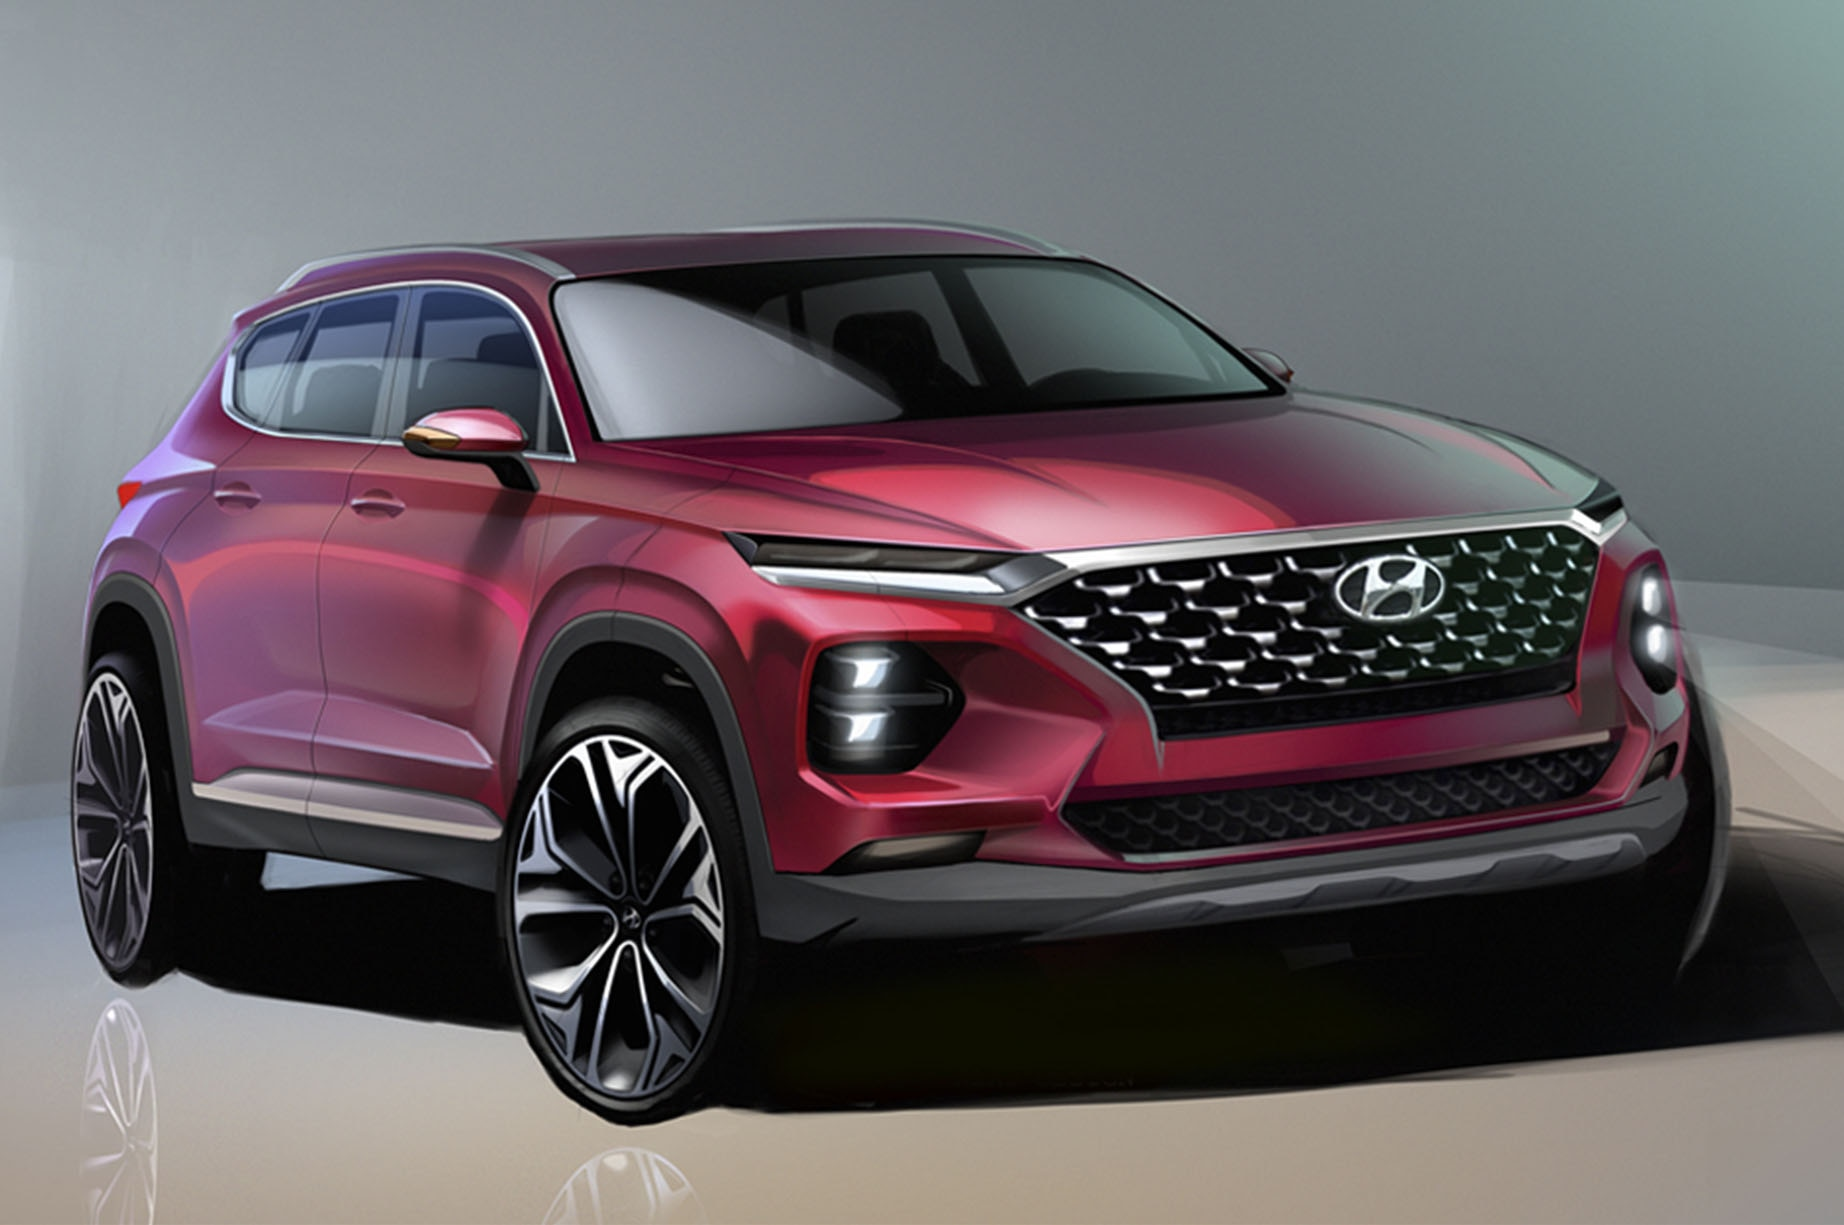 Hyundai Santa Fe Will Make You Feel Safer